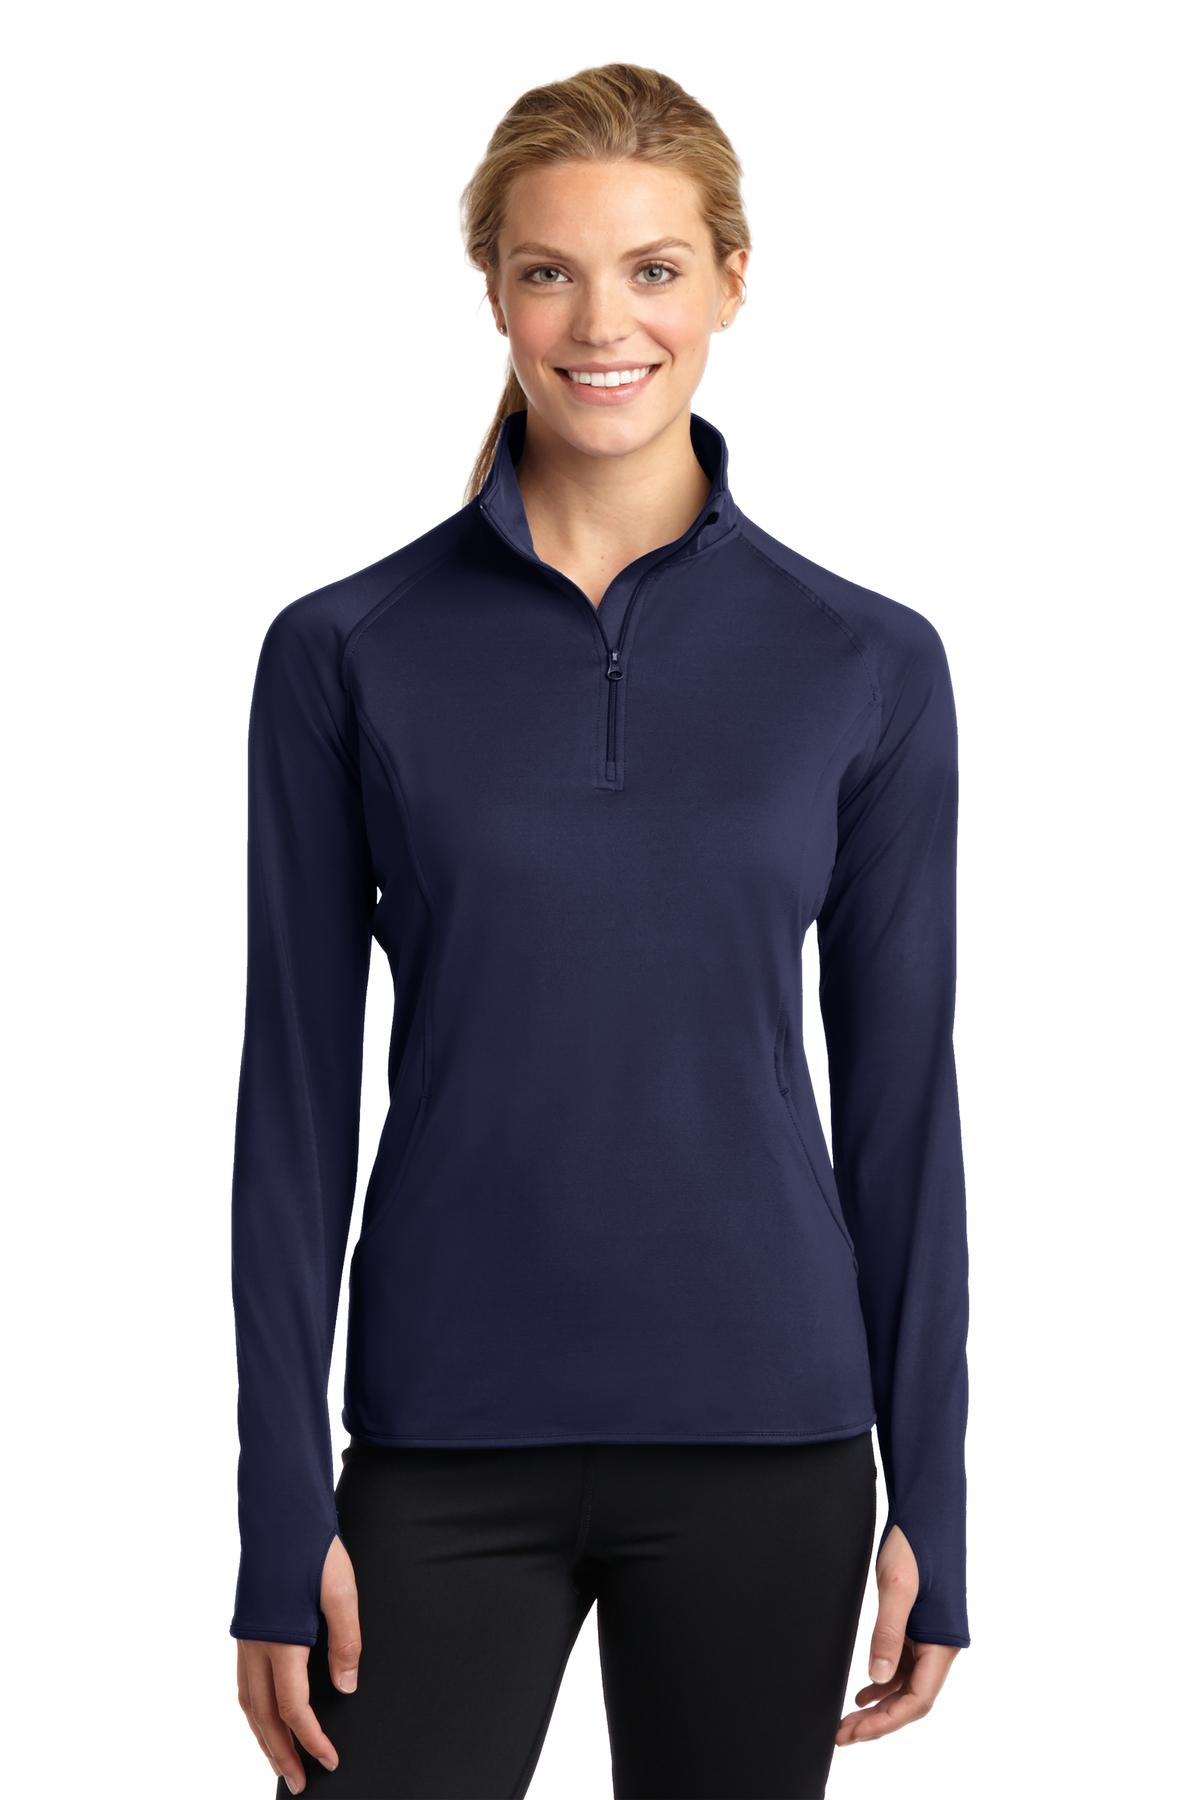 Sport-Tek ®  Ladies Sport-Wick ®  Stretch 1/2-Zip Pullover. LST850 - True Navy